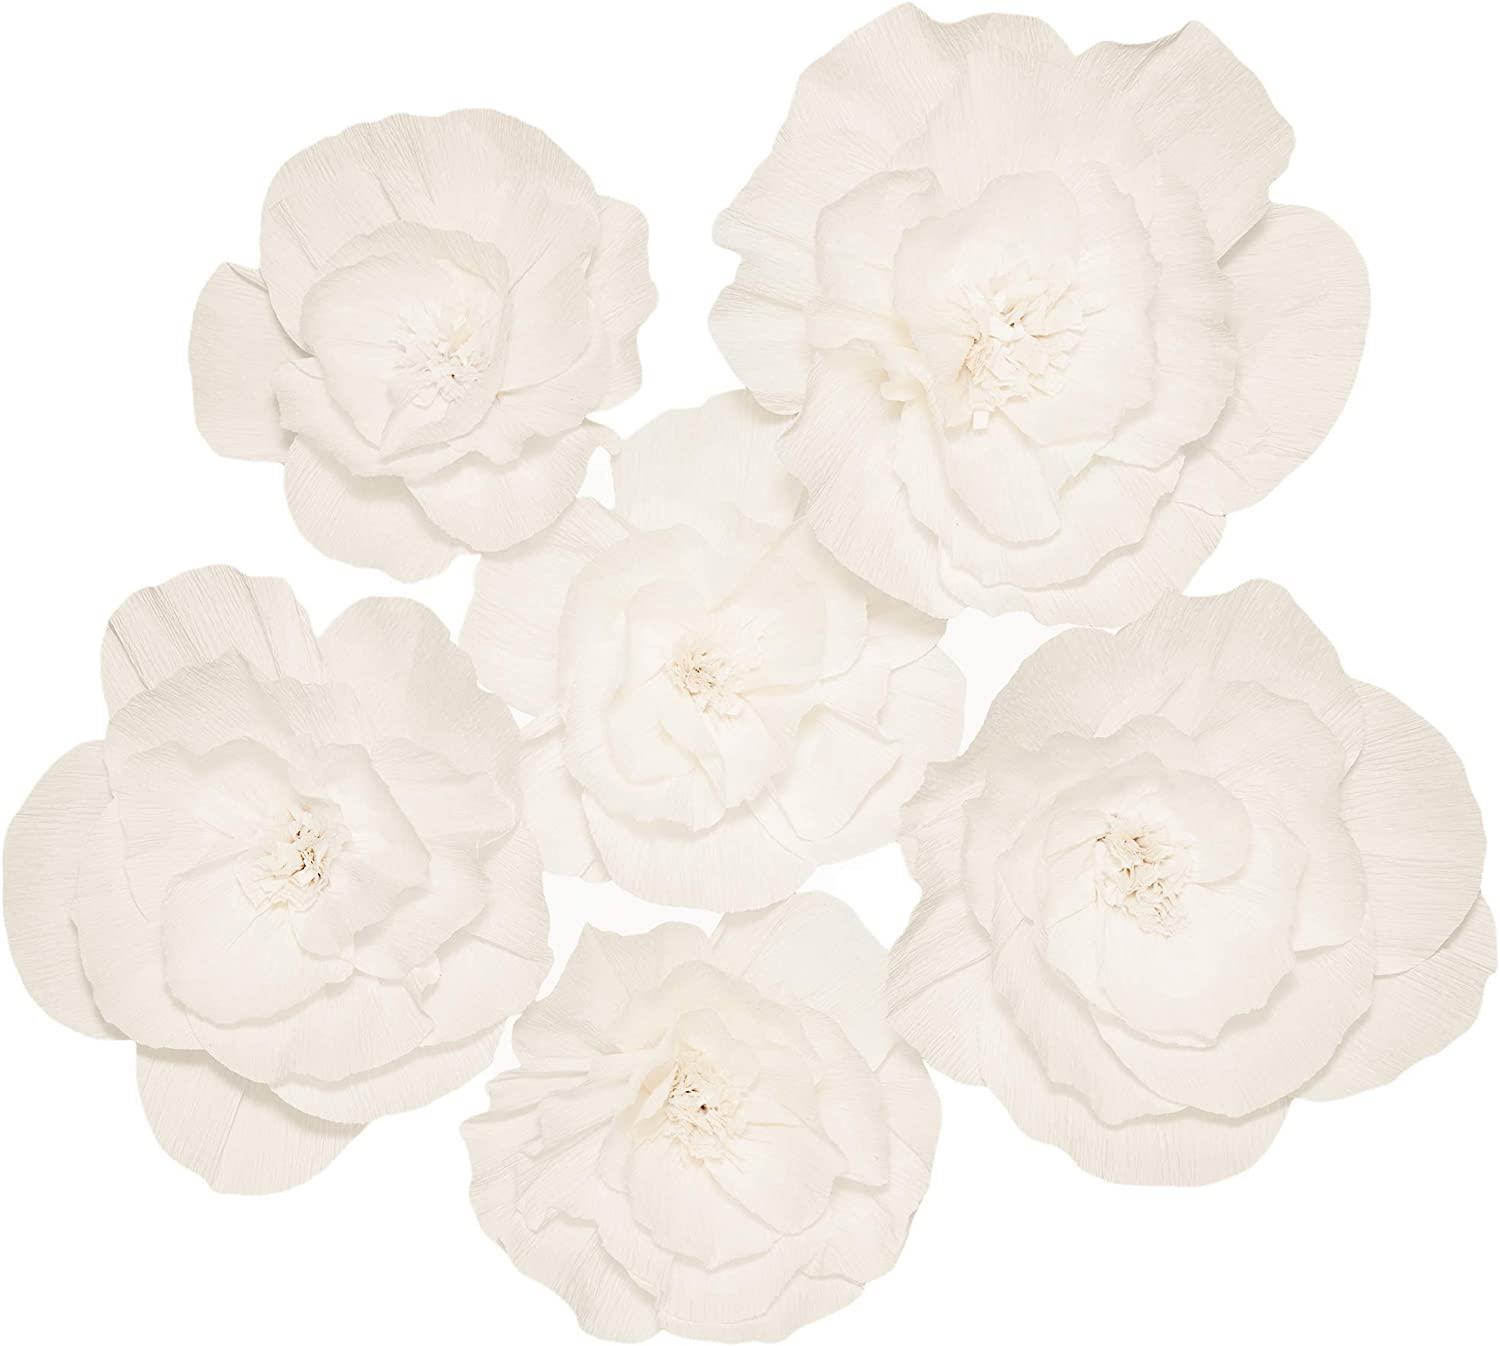 Paper Flowers Decorations for Wall - Paper Wall Flowers - Flower Wall Decorations - Large Flowers Decorations for Wall - Paper Flower Wall - Big Paper Flowers Decorations for Wall (6Pcs)